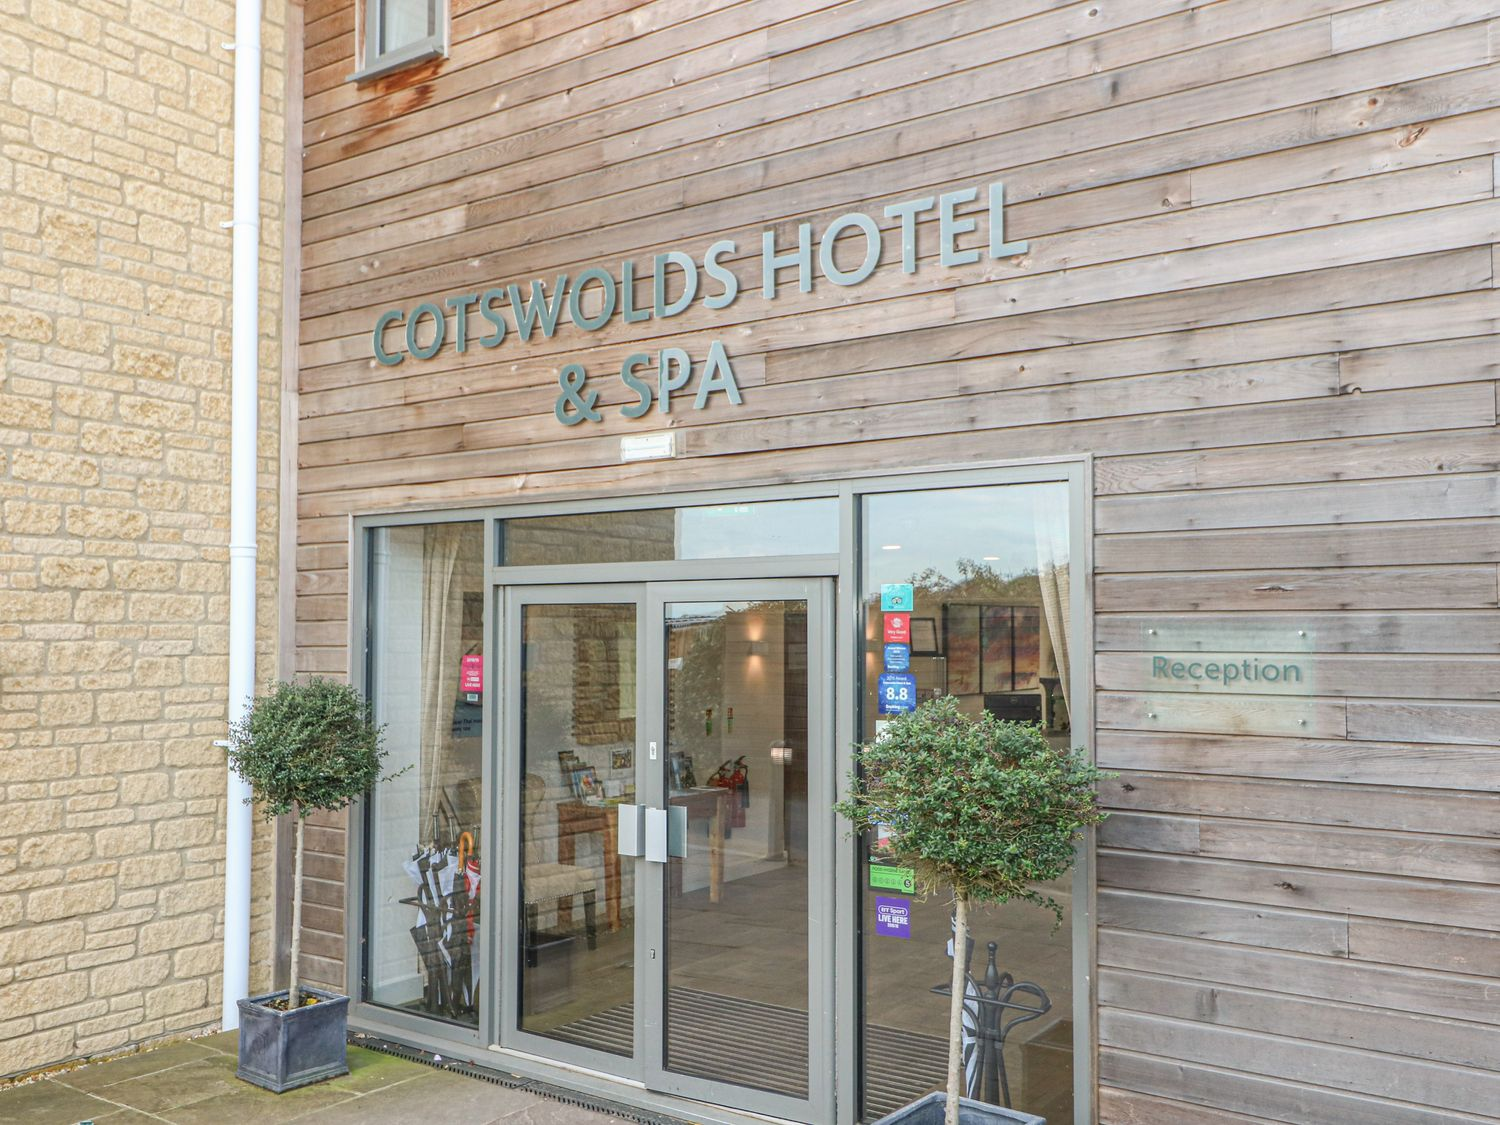 Cotswold Club 2 Bedroom Apartment - Cotswolds - 1034410 - photo 1